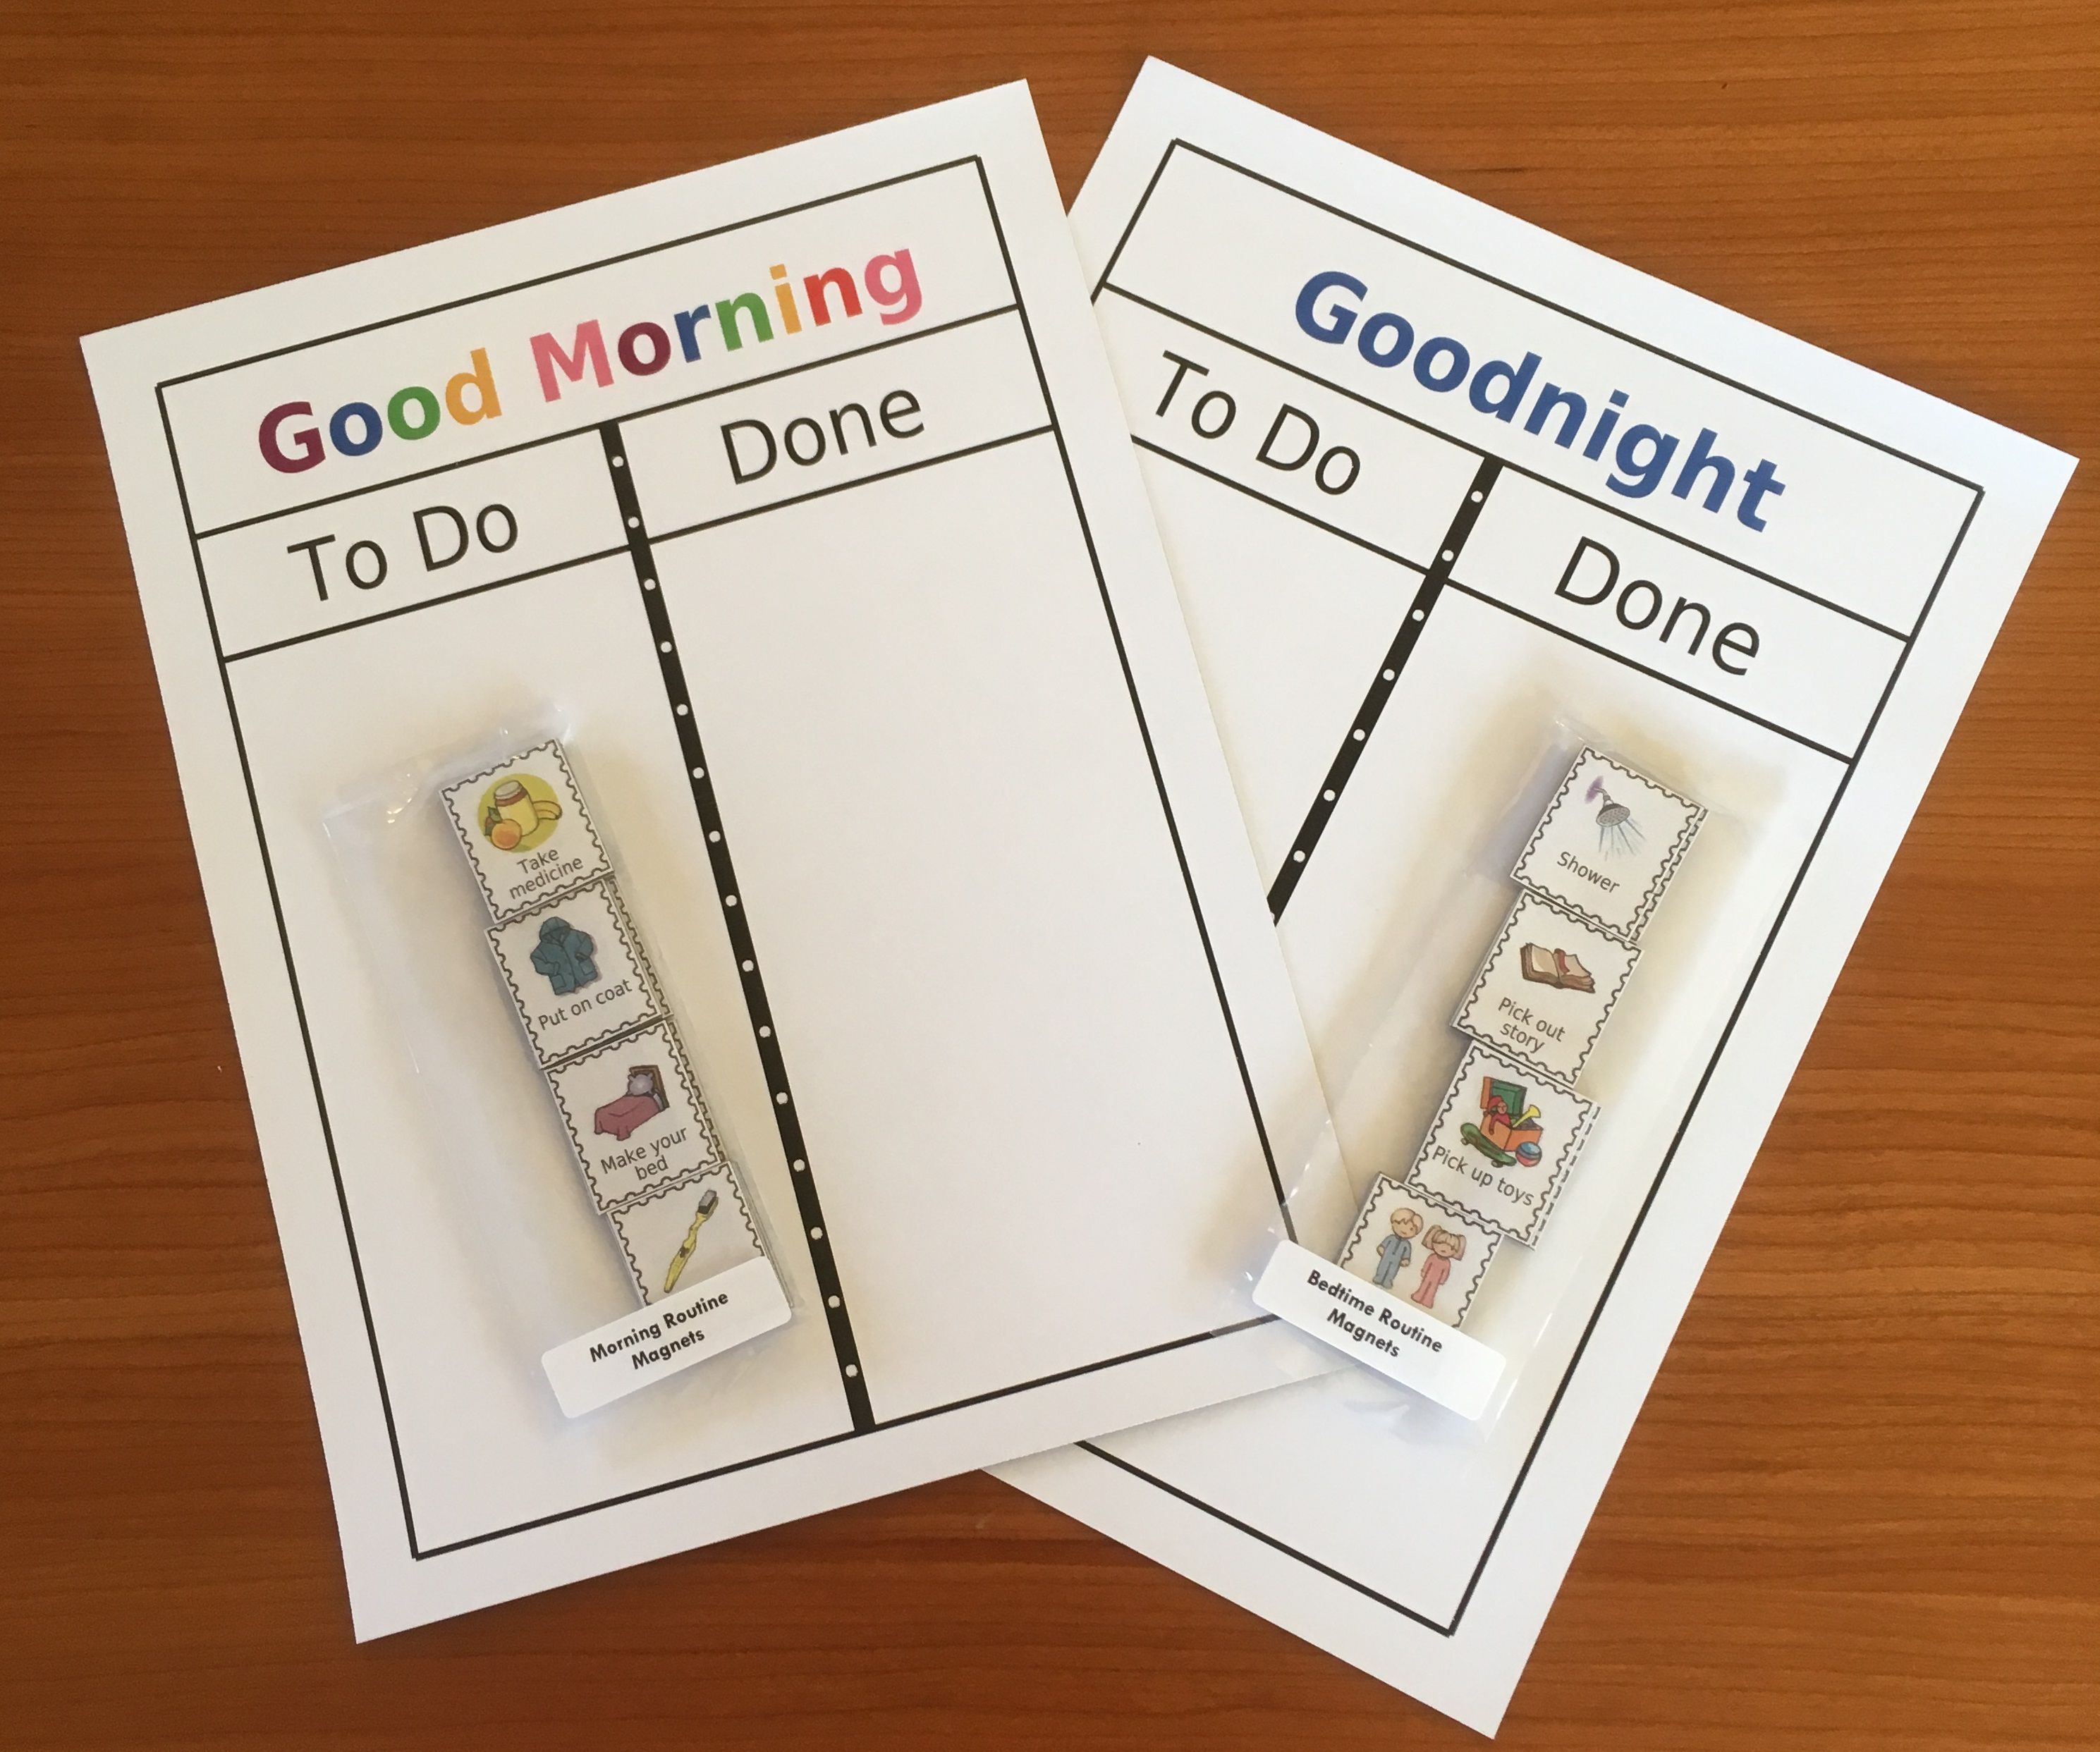 Check out these magnet boards Nicole from Idaho ordered. I like her idea of using the time of day instead of the child's name at the top of the board. And her choice of blue for bedtime and rainbow letters for the morning is perfect!